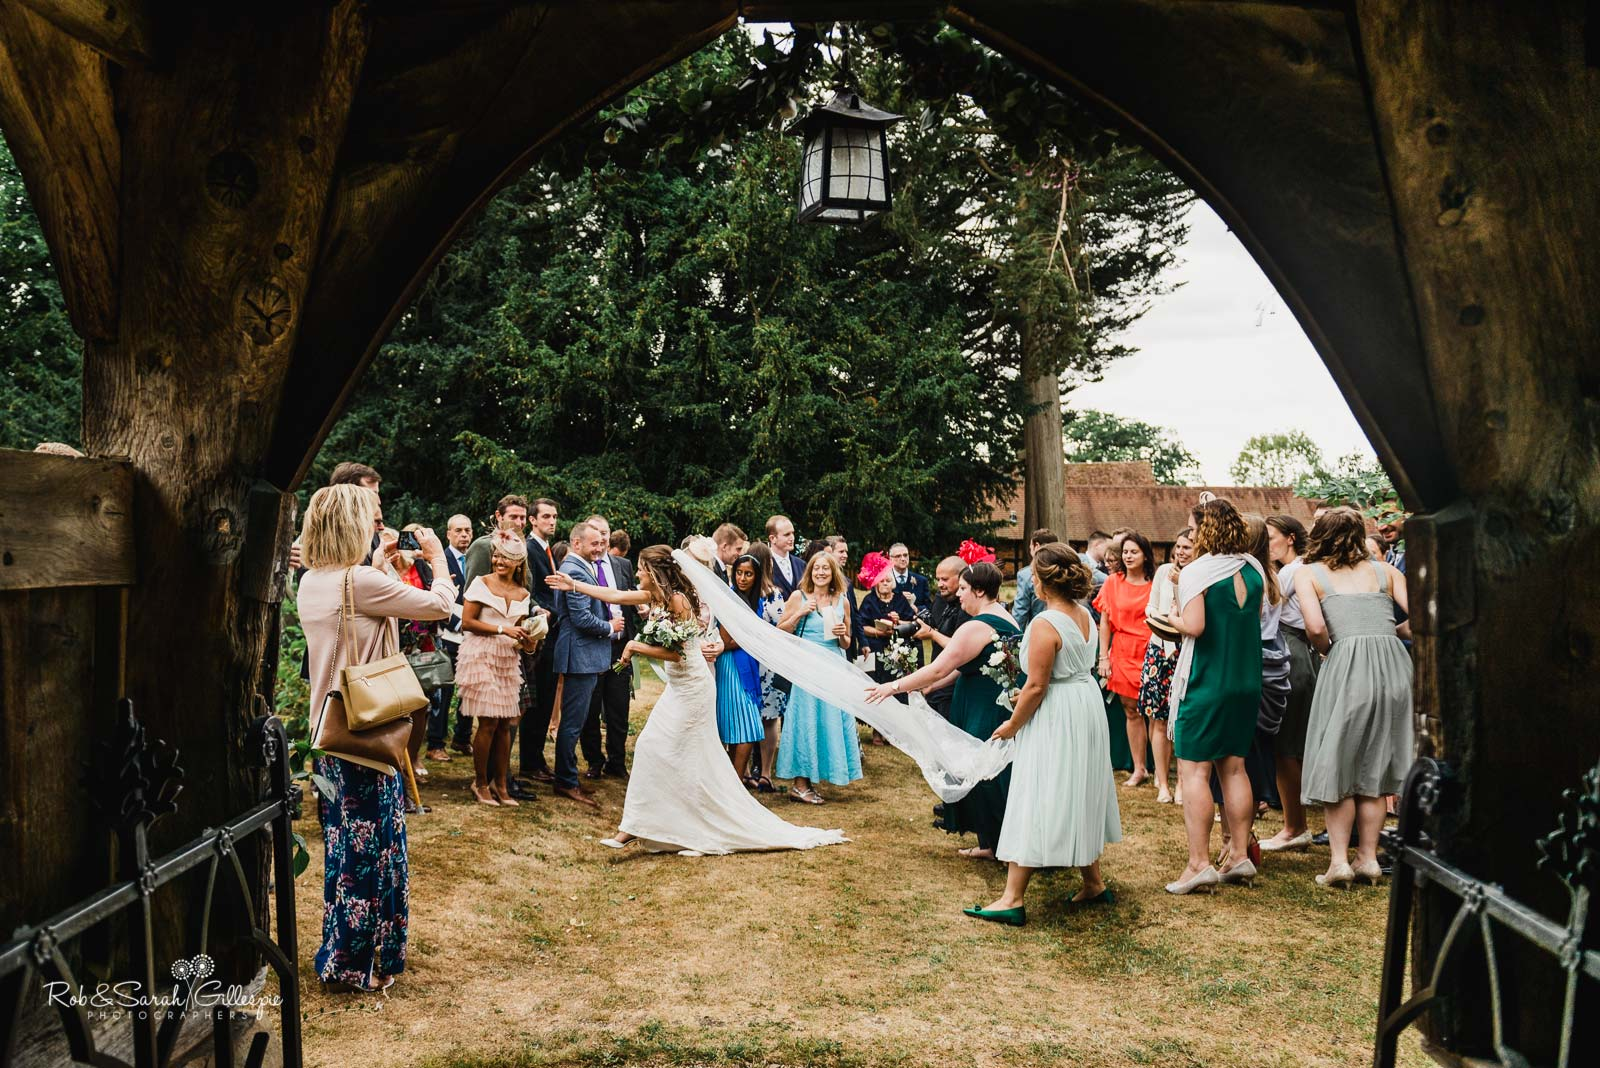 Natural and candid wedding photography at St Giles church Packwood